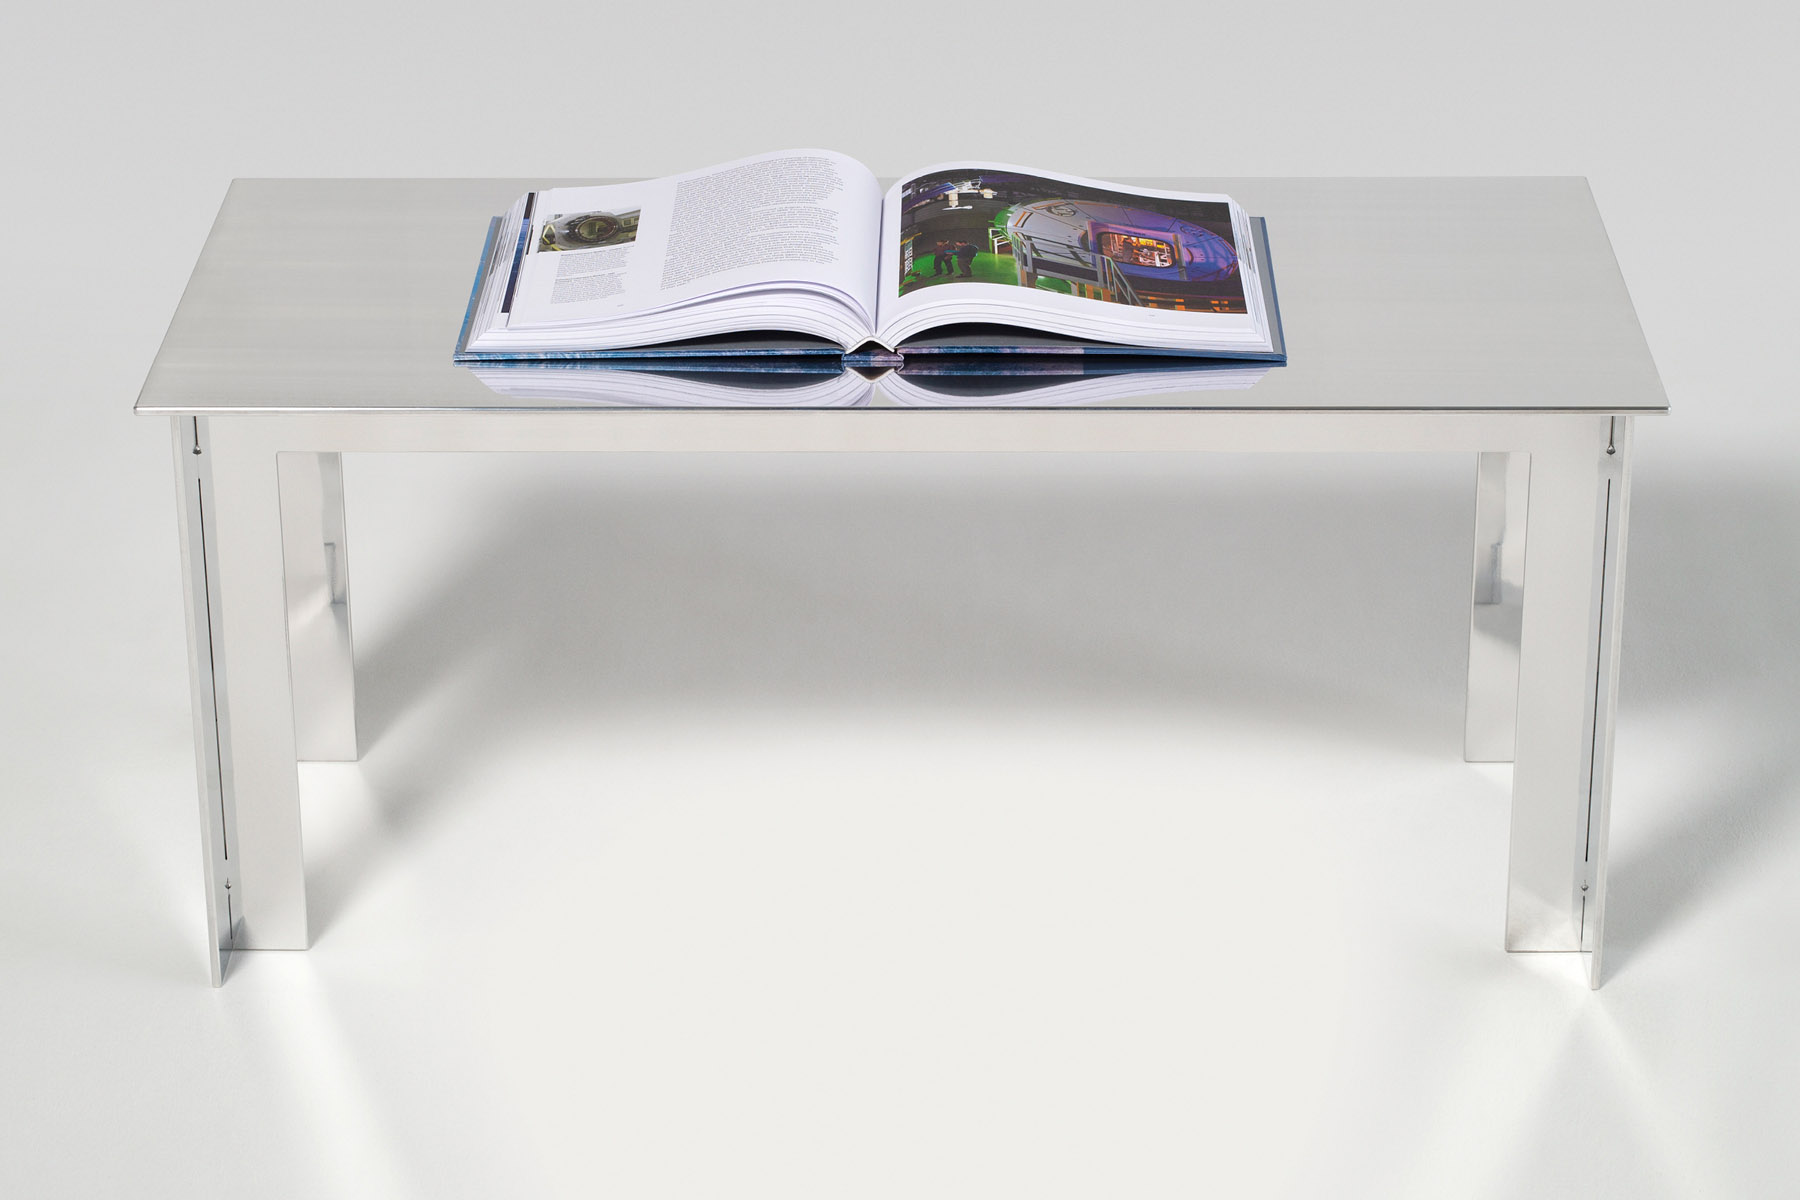 A coffee table in solid aluminium without screws, welds or small parts